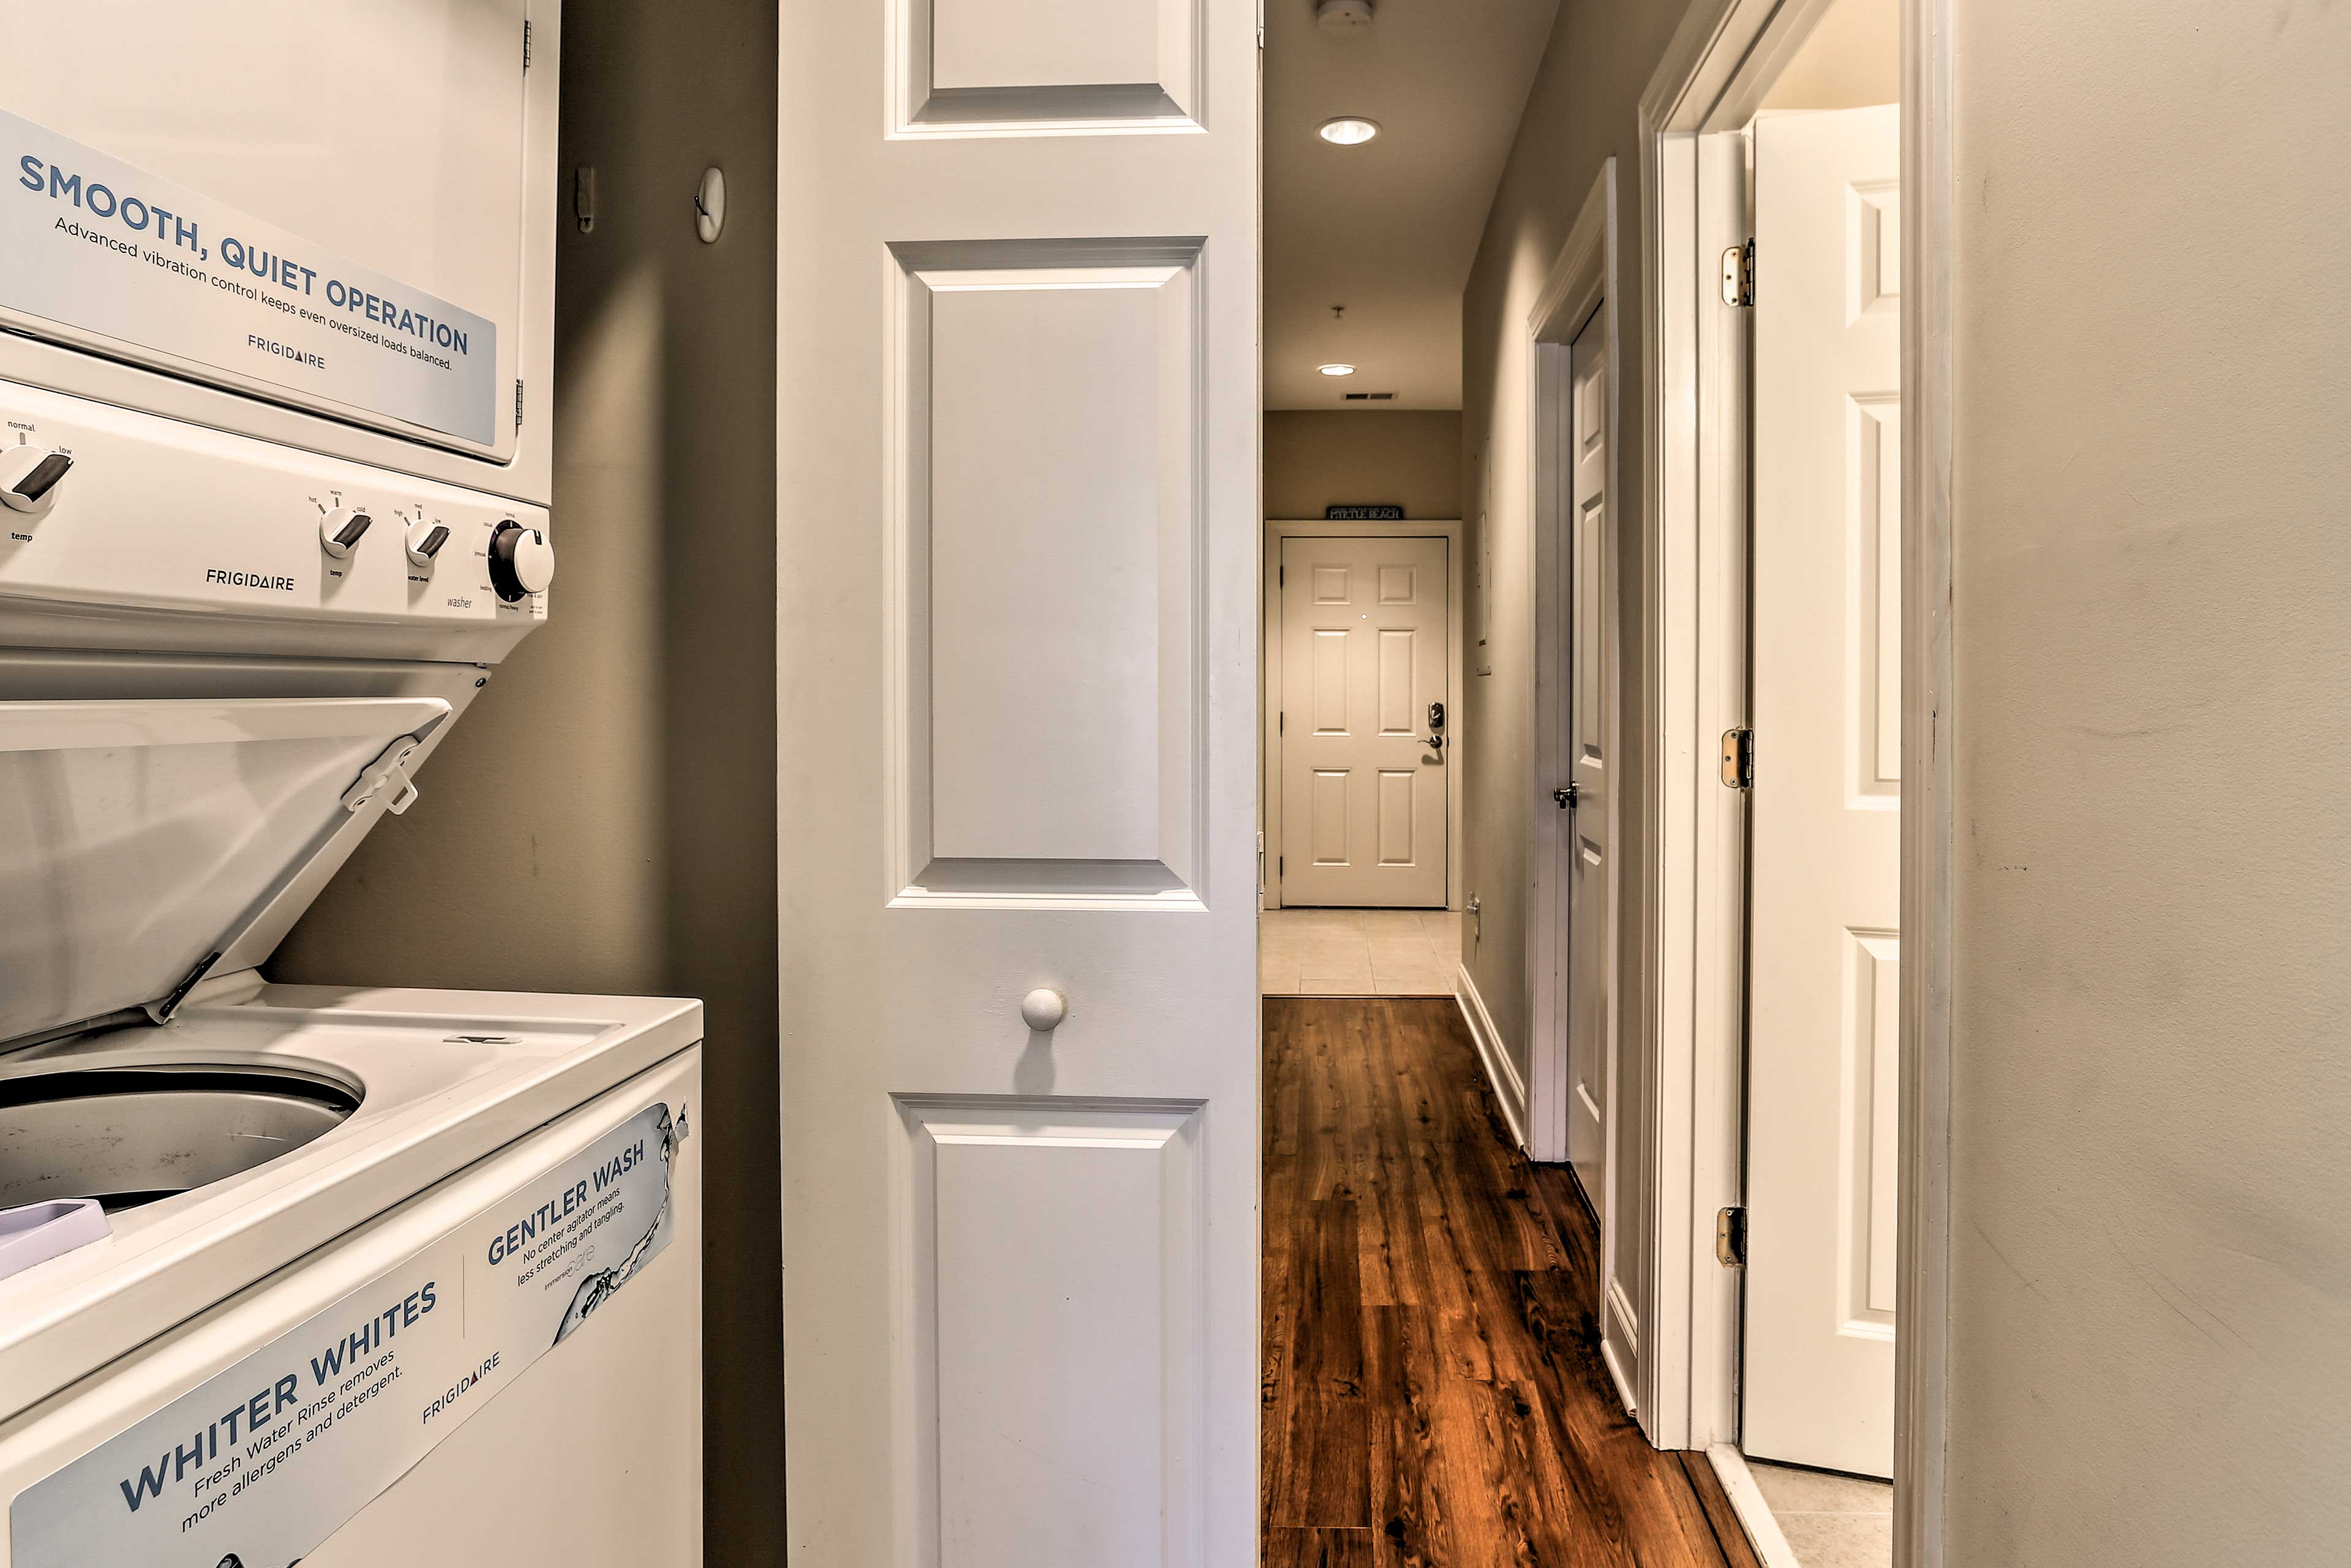 Avoid packing up dirty clothes when you leave by using these convenient in-unit laundry machines.